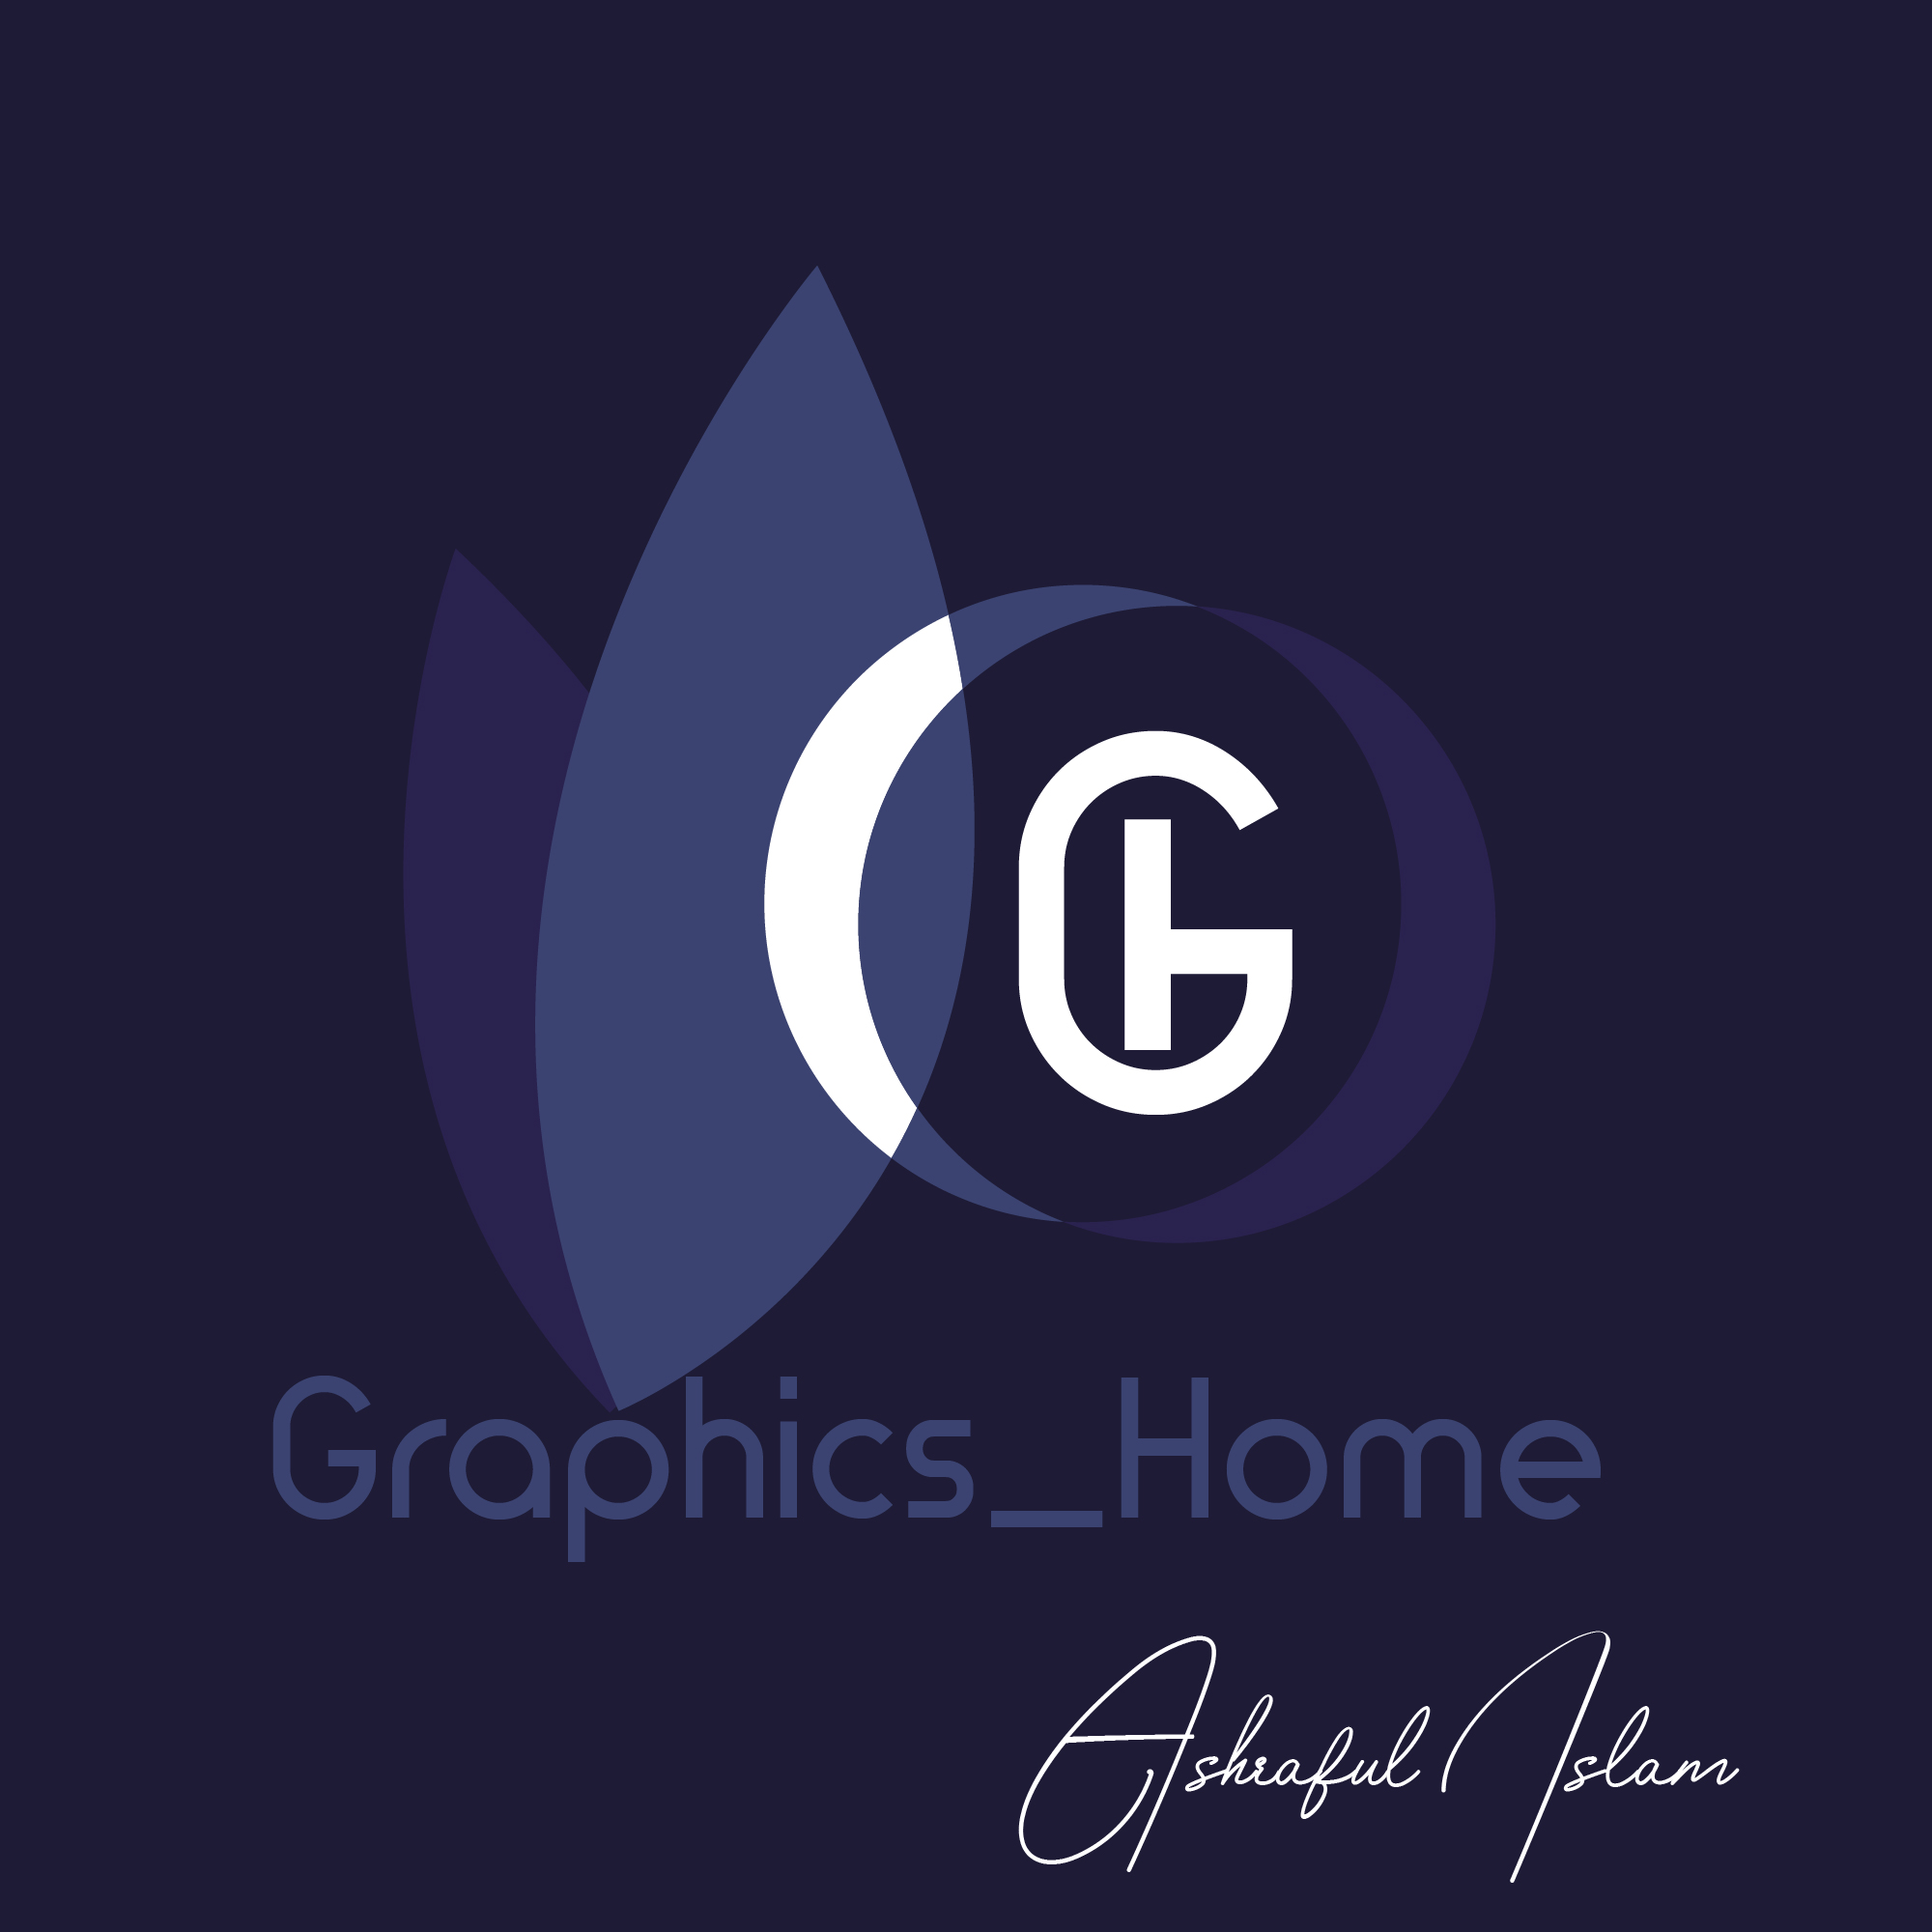 I'll Design Professional And Unique Logo in 3 Hours